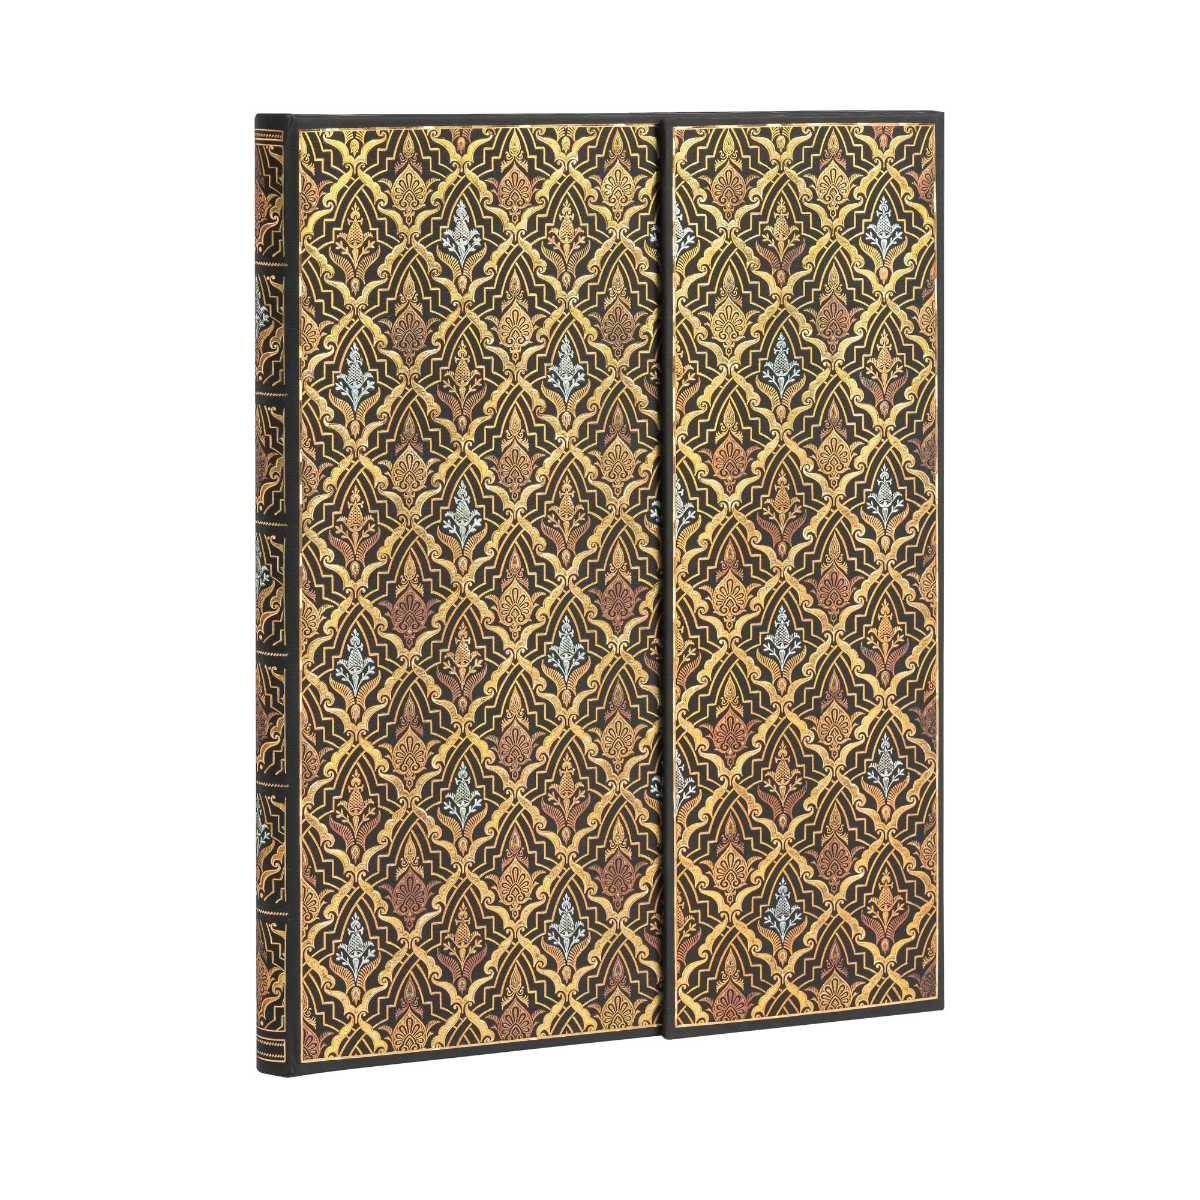 Paperblanks Voltaire Destiny Ultra 7 x 9 Inch Journal